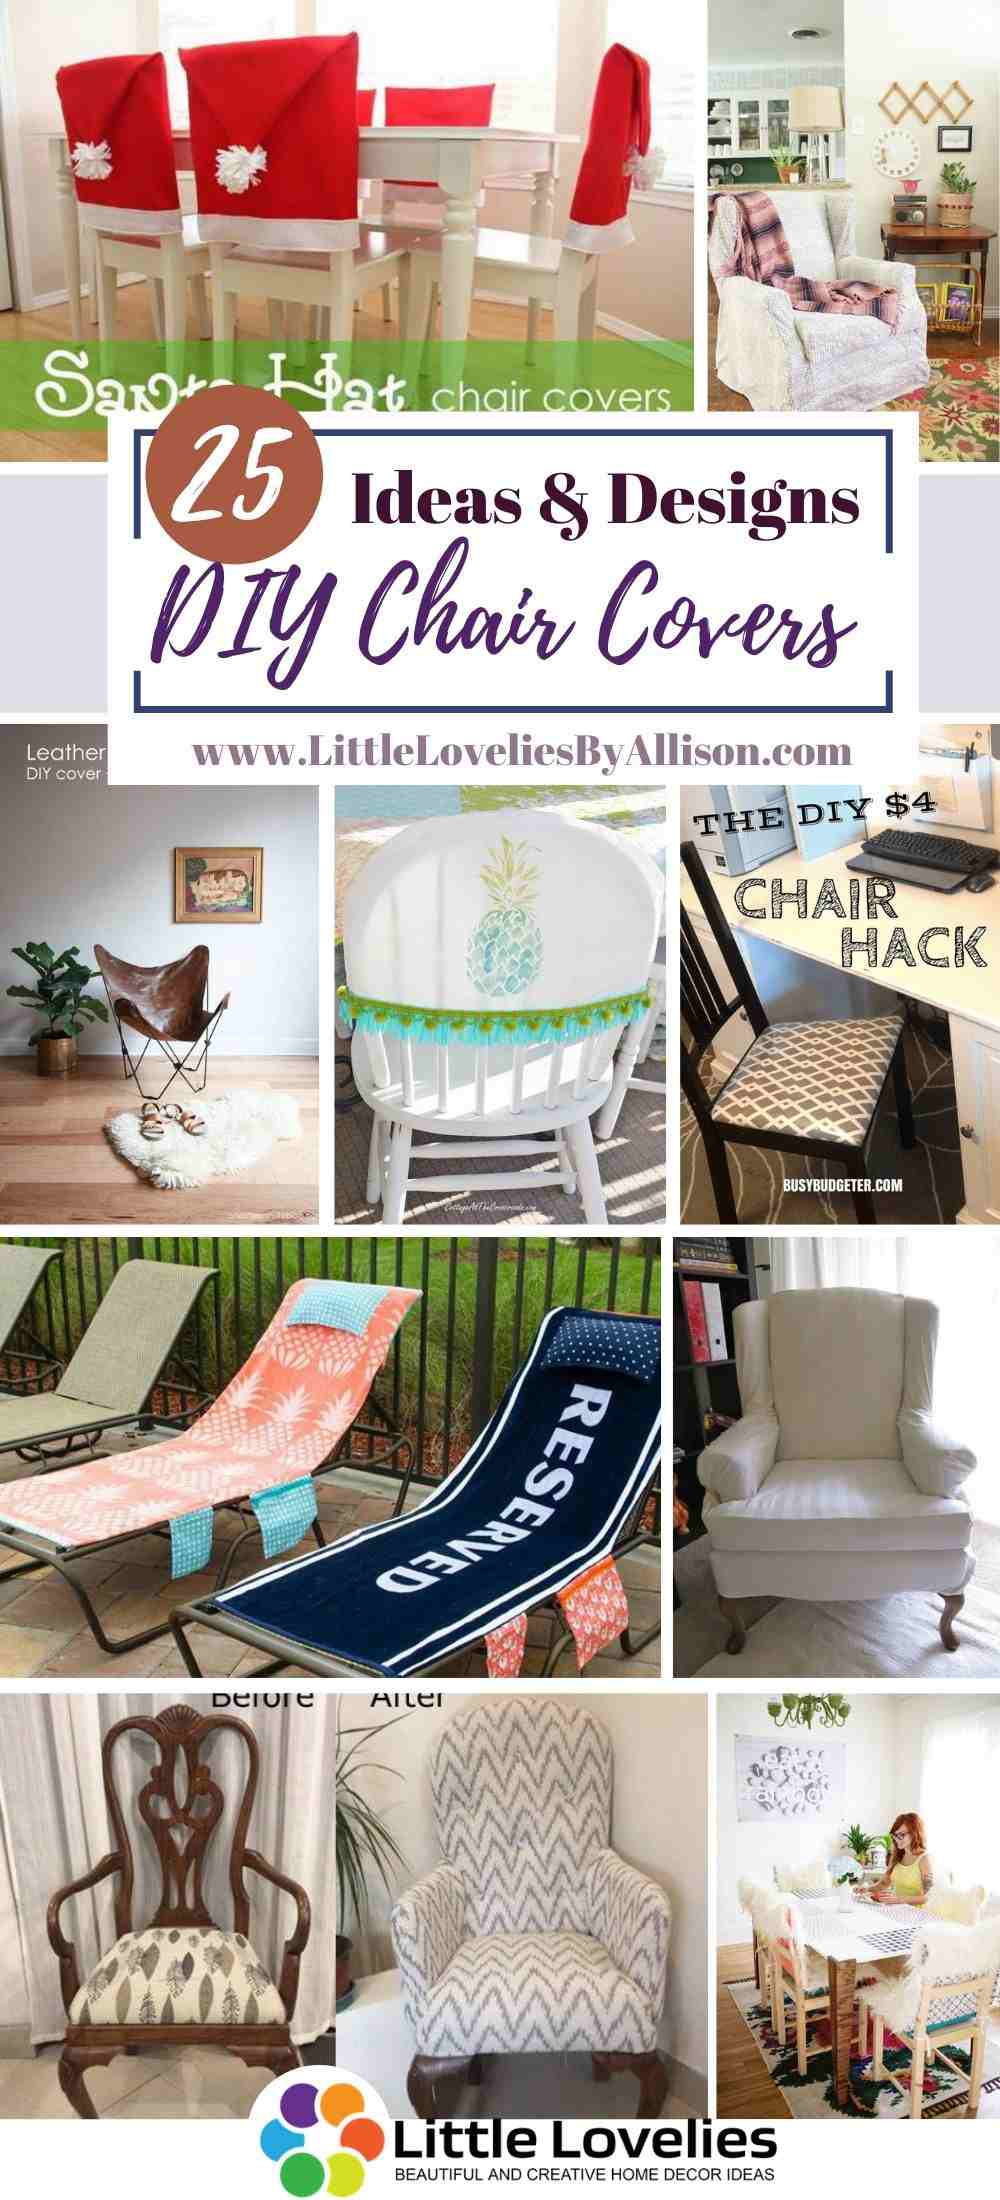 25 Diy Chair Covers Homemade Chair Cover Tutorial